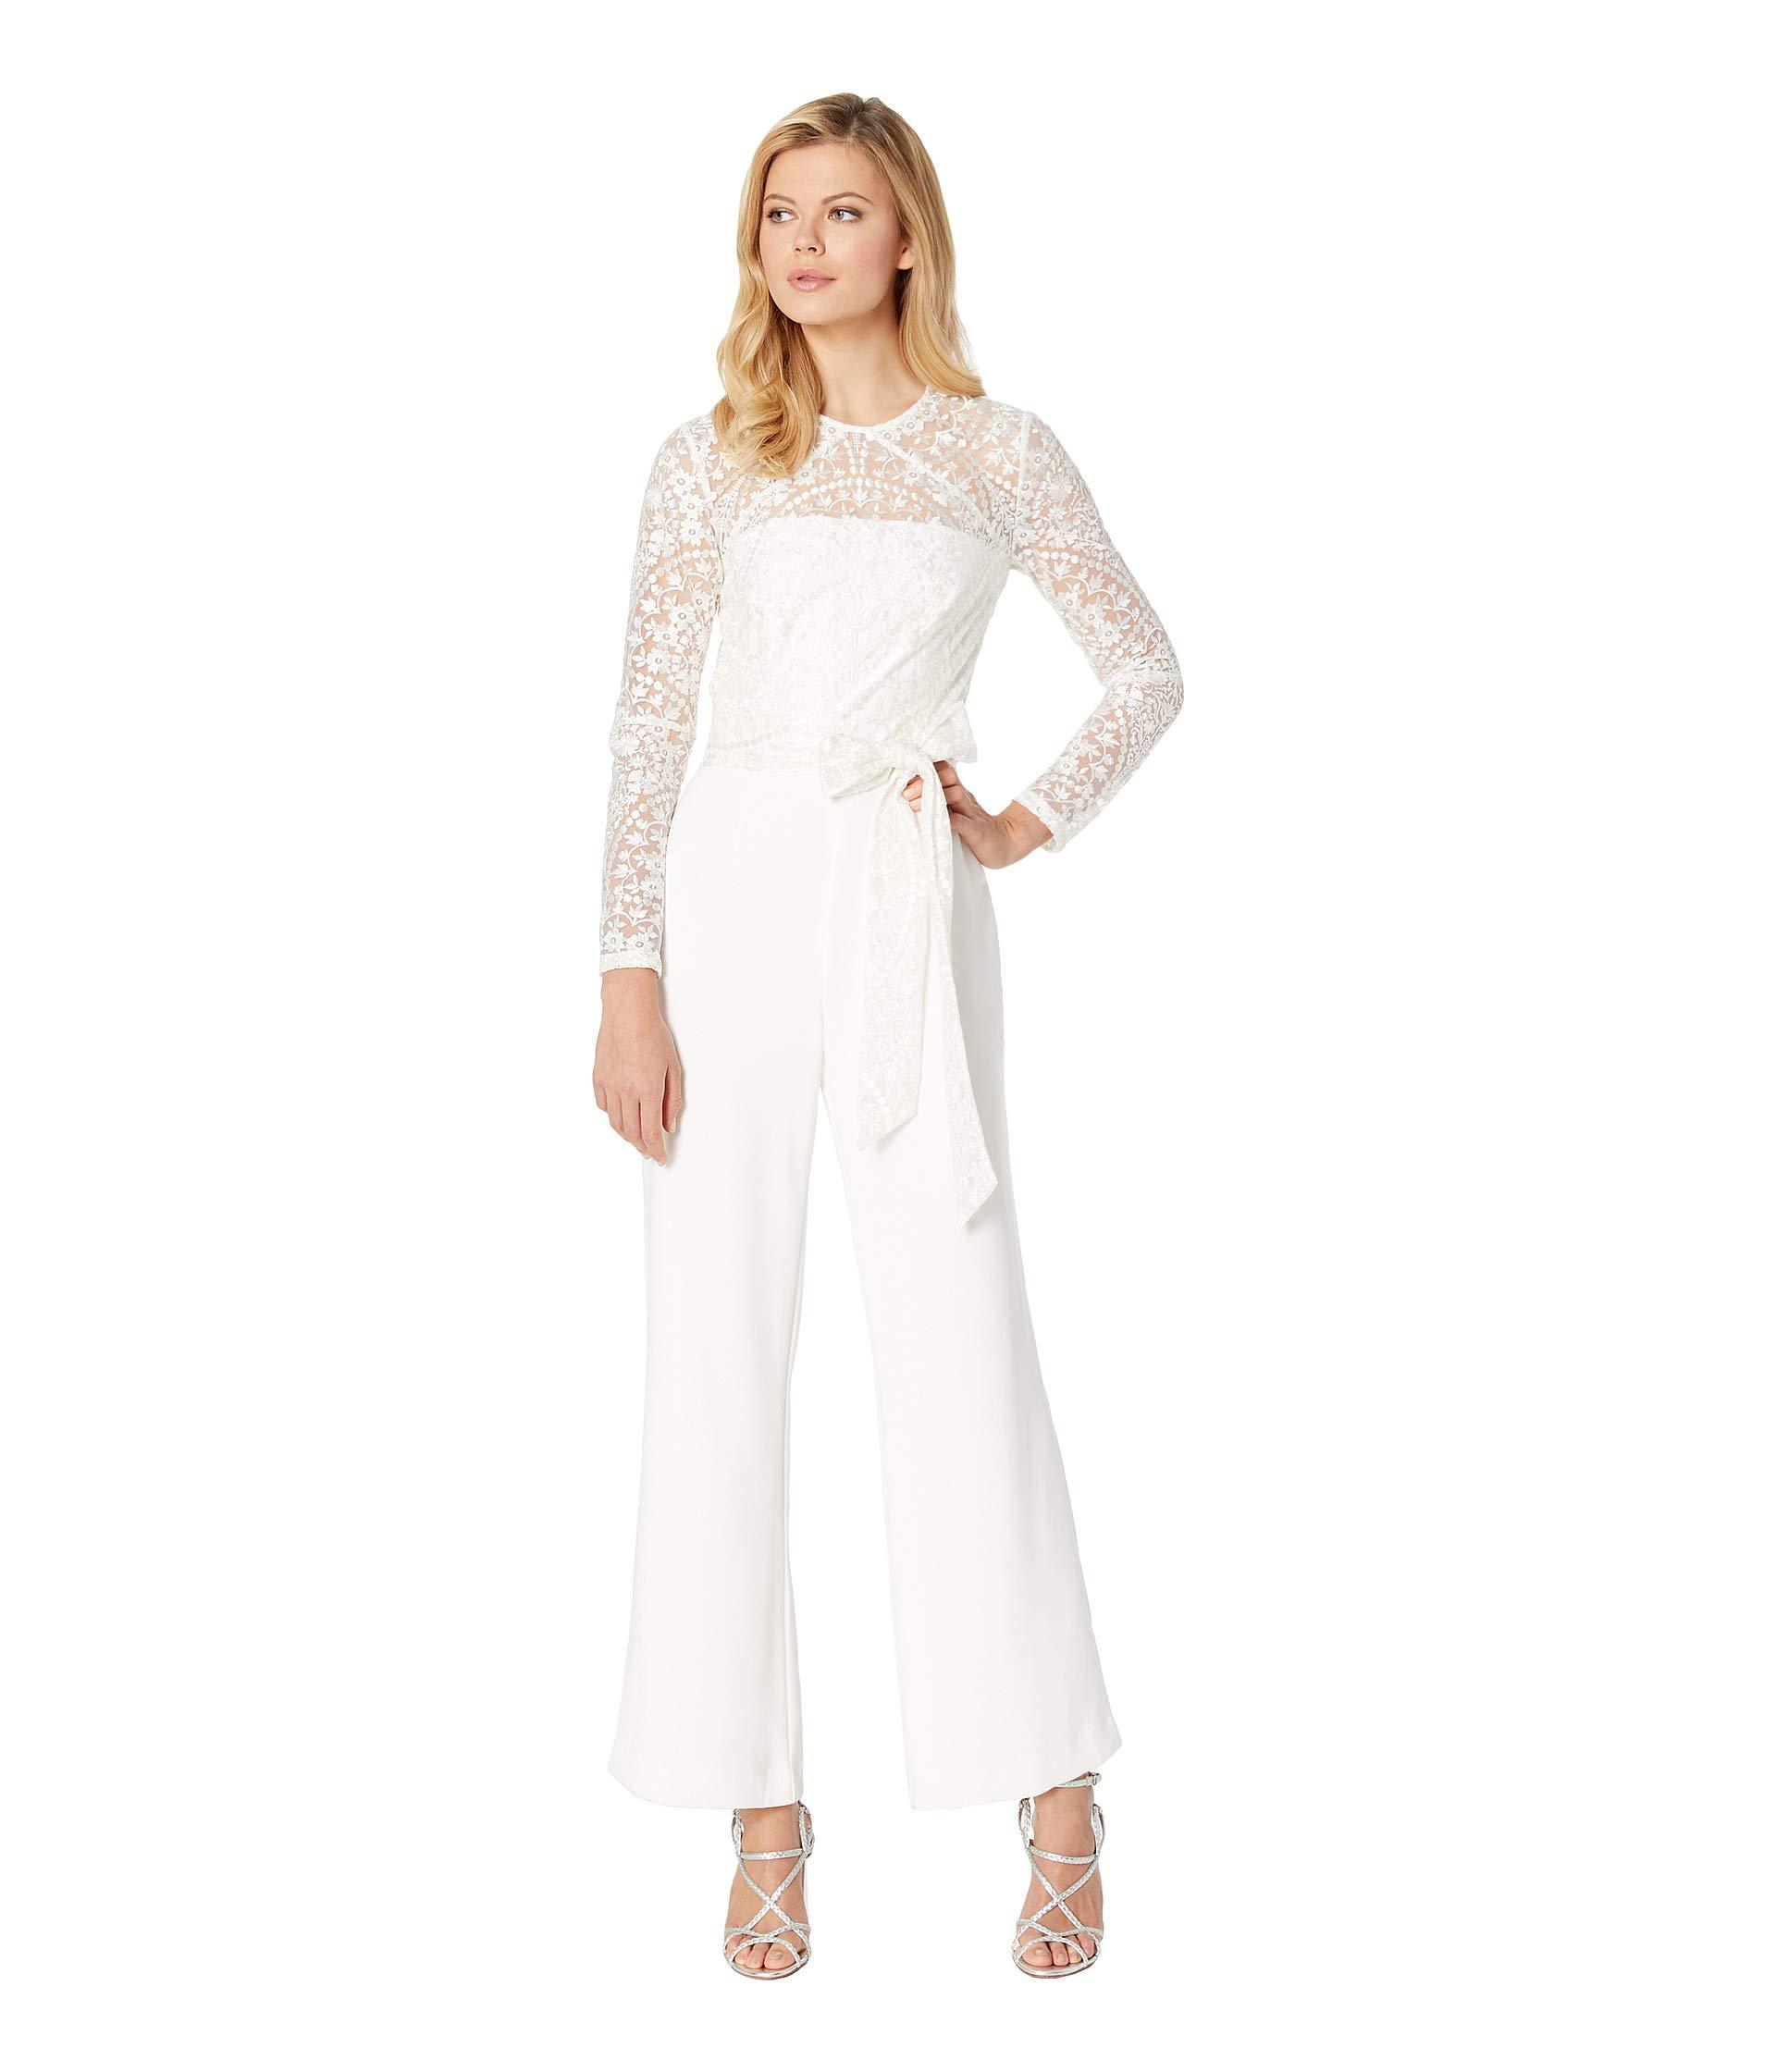 6556e4b6d4aa Lyst - Tahari Long Sleeve Lace   Crepe Jumpsuit in White - Save 11%